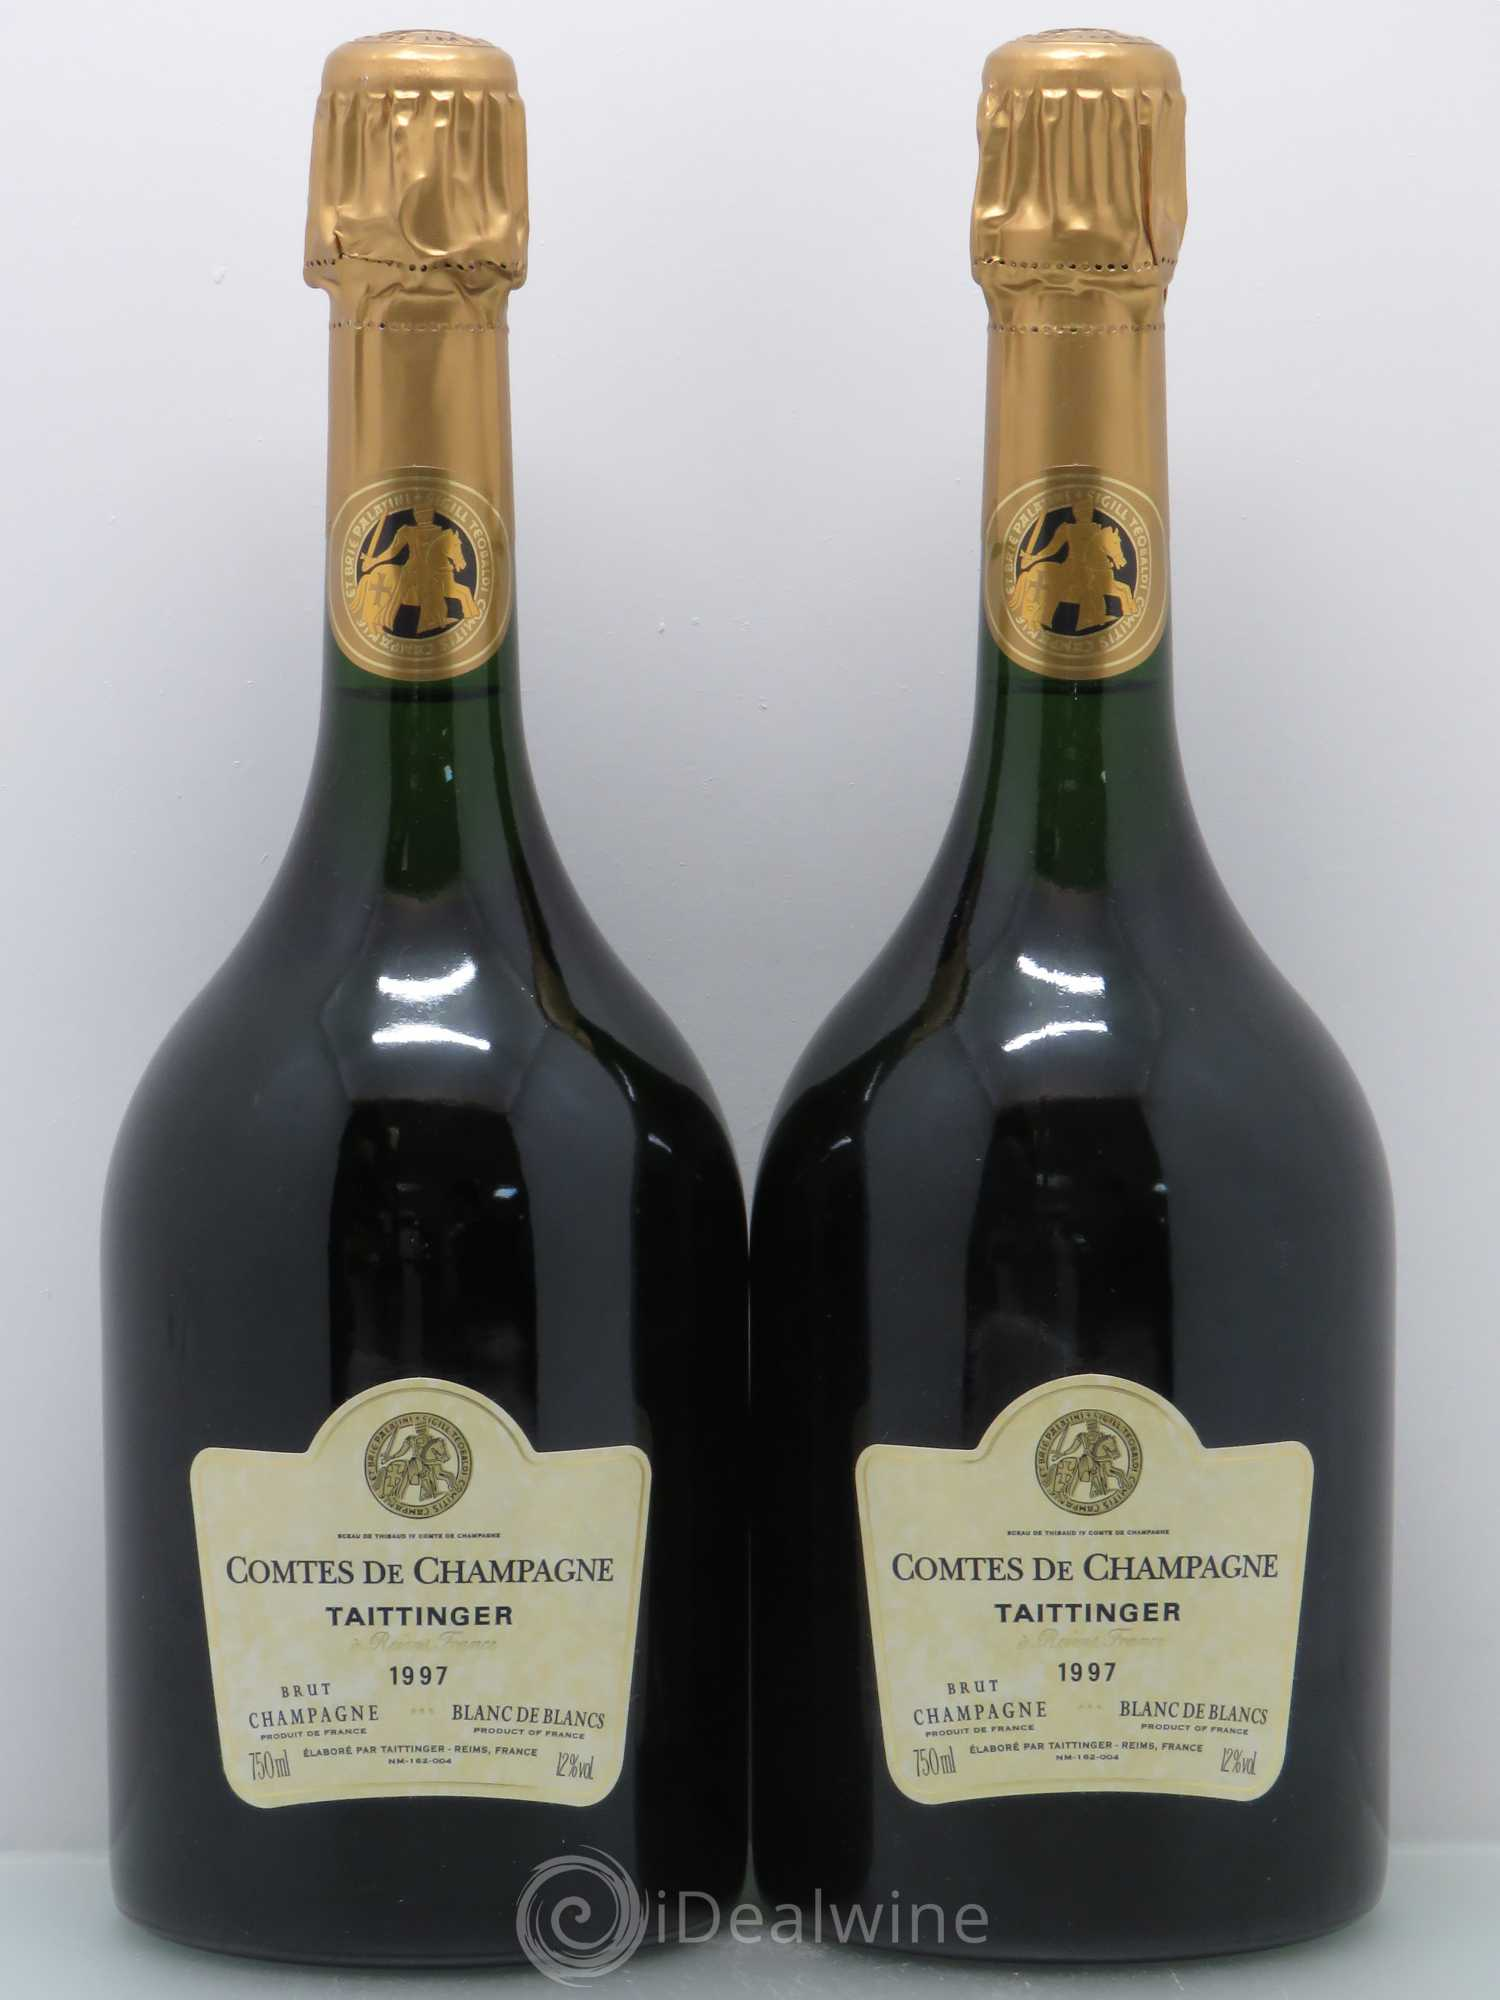 acheter comtes de champagne champagne taittinger 1997 lot 3023. Black Bedroom Furniture Sets. Home Design Ideas